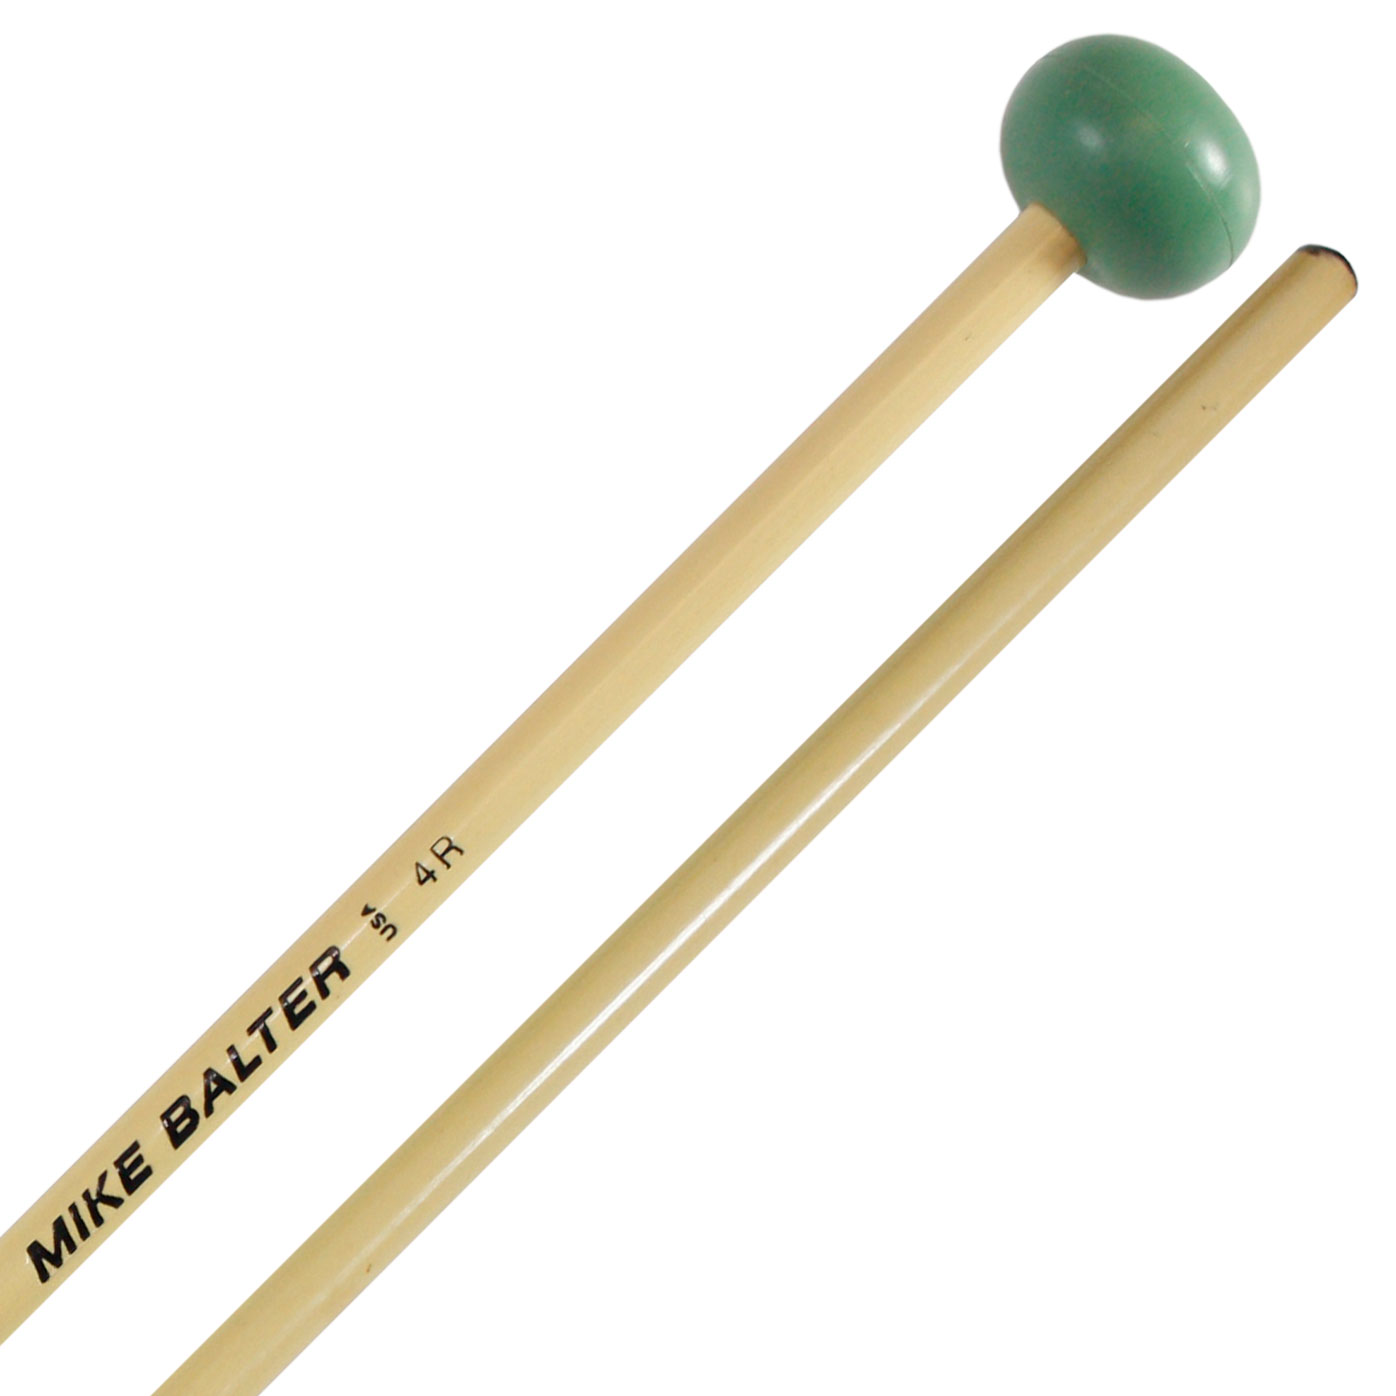 Mike Balter Unwound Medium Rubber Xylophone Mallets with Rattan Handles